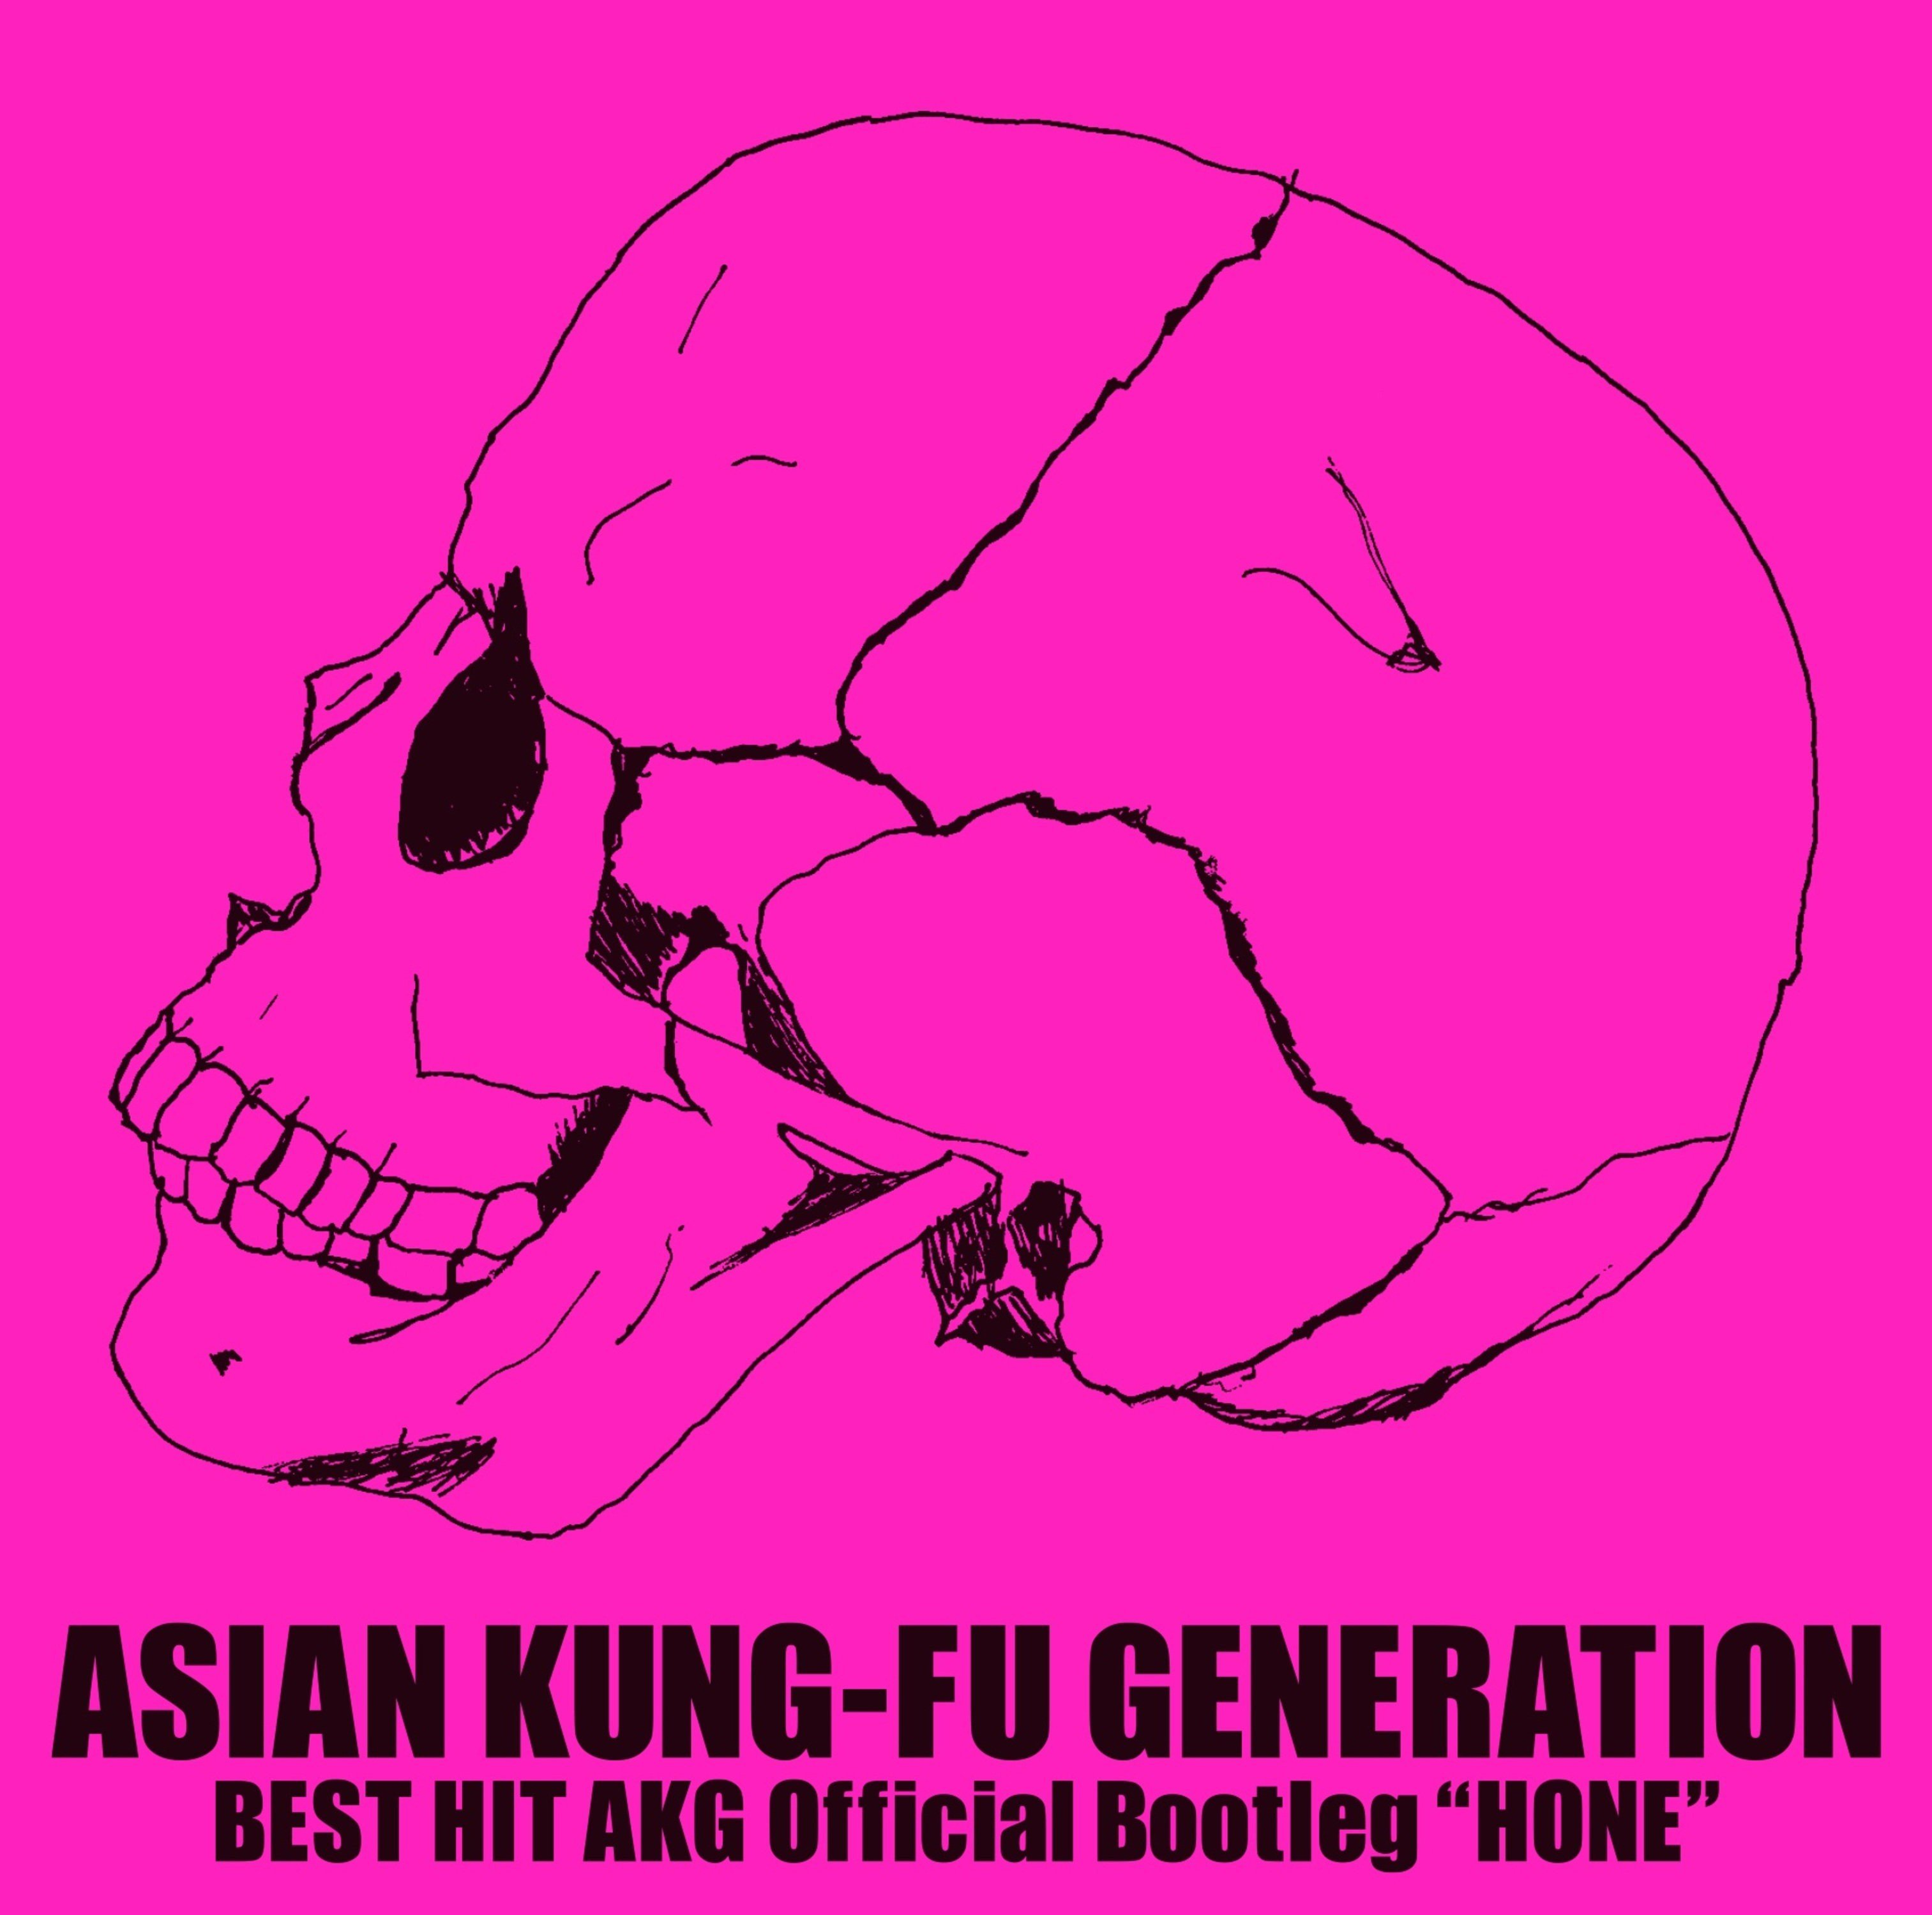 "ASIAN KUNG-FU GENERATION – BEST HIT AKG Official Bootleg ""HONE"" [FLAC / 24bit Lossless / WEB] [2018.03.28]"